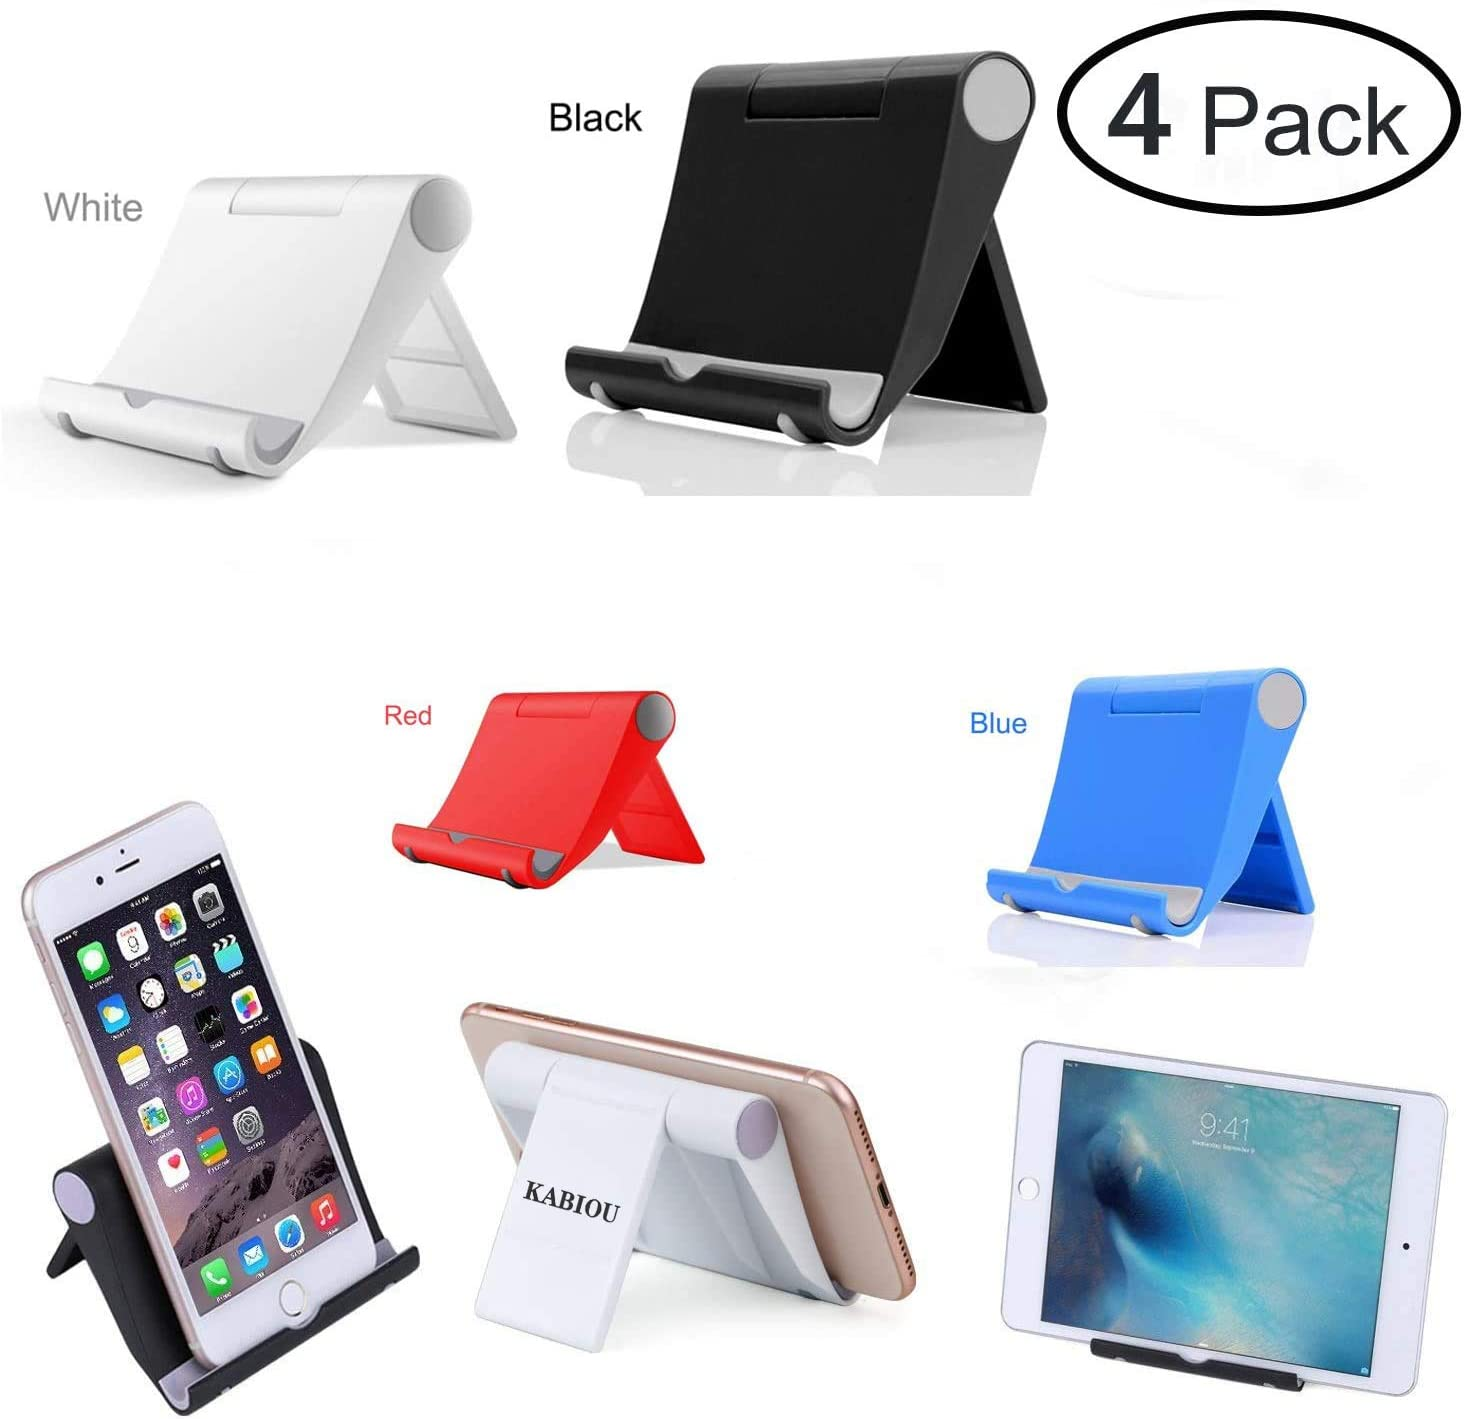 "KABIOU 4 Pack Cell Phone Stand Adjustable Holder for Desk,Tablet Stand Universal Smartphones for Holder Tablets(4-11""),Compatible with iPhone11/11Pro Max/X/XS/XR/7/8Plus,Galaxy S8/S7Note8,iPad,Mini: Home Audio & Theater"